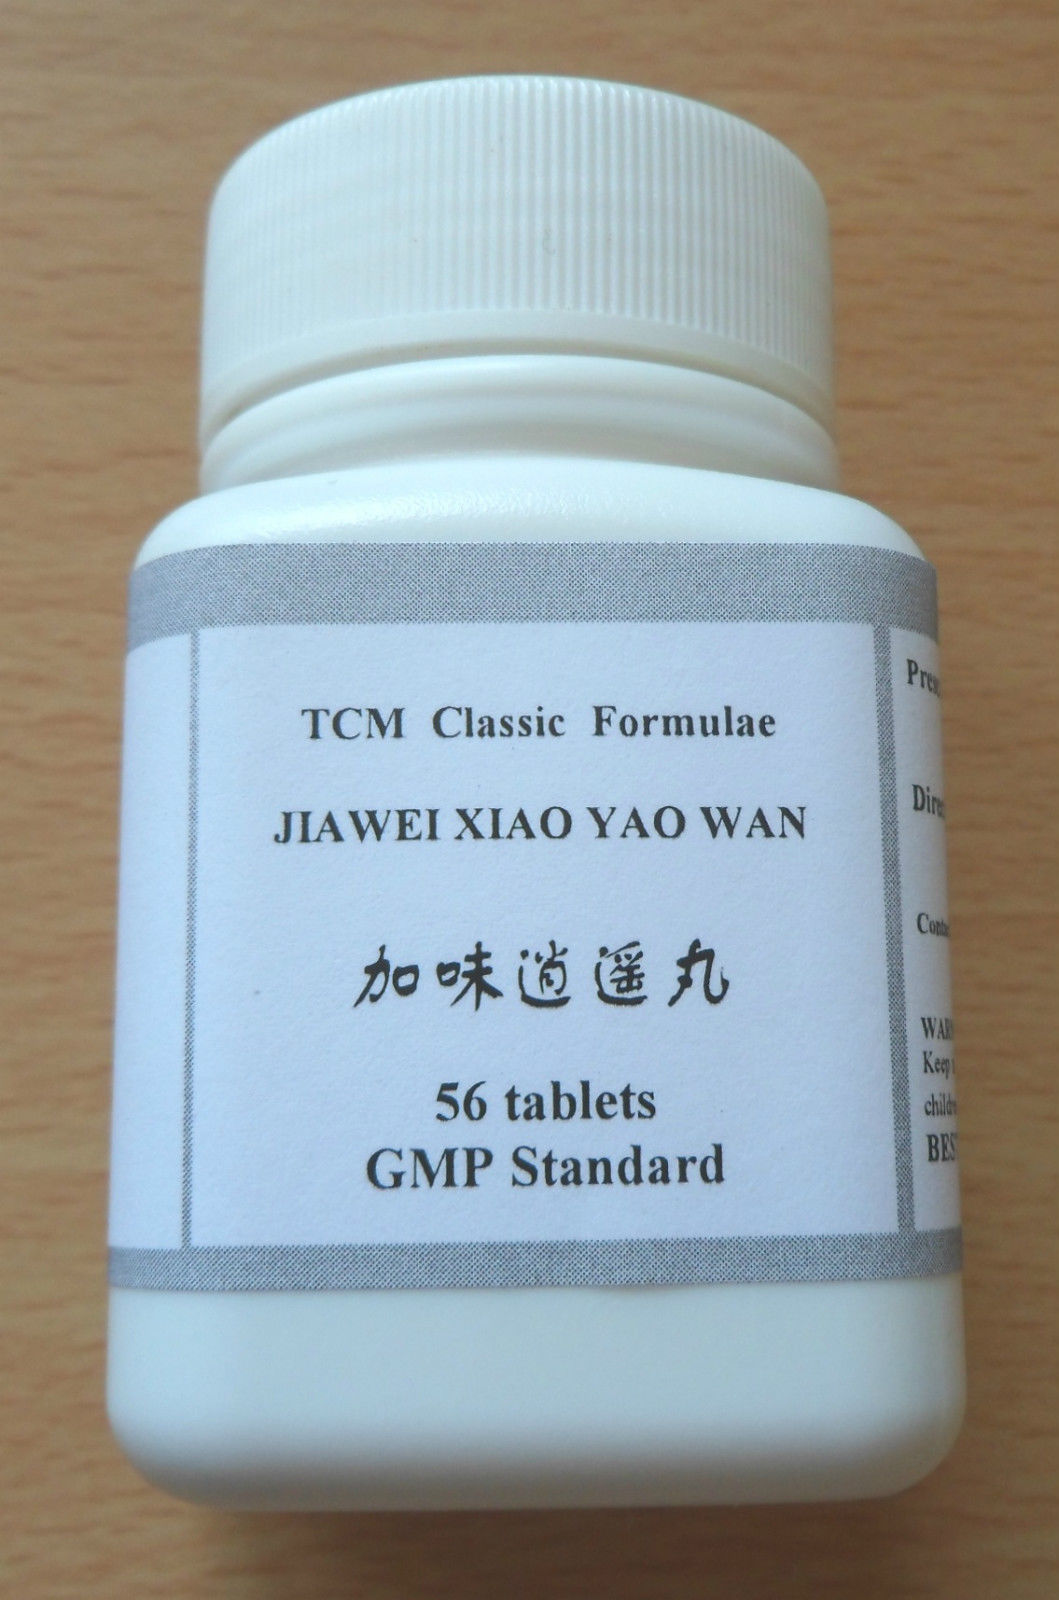 8 x Jia Wei Xiao Yao Wan Tablets, High Strength1:6